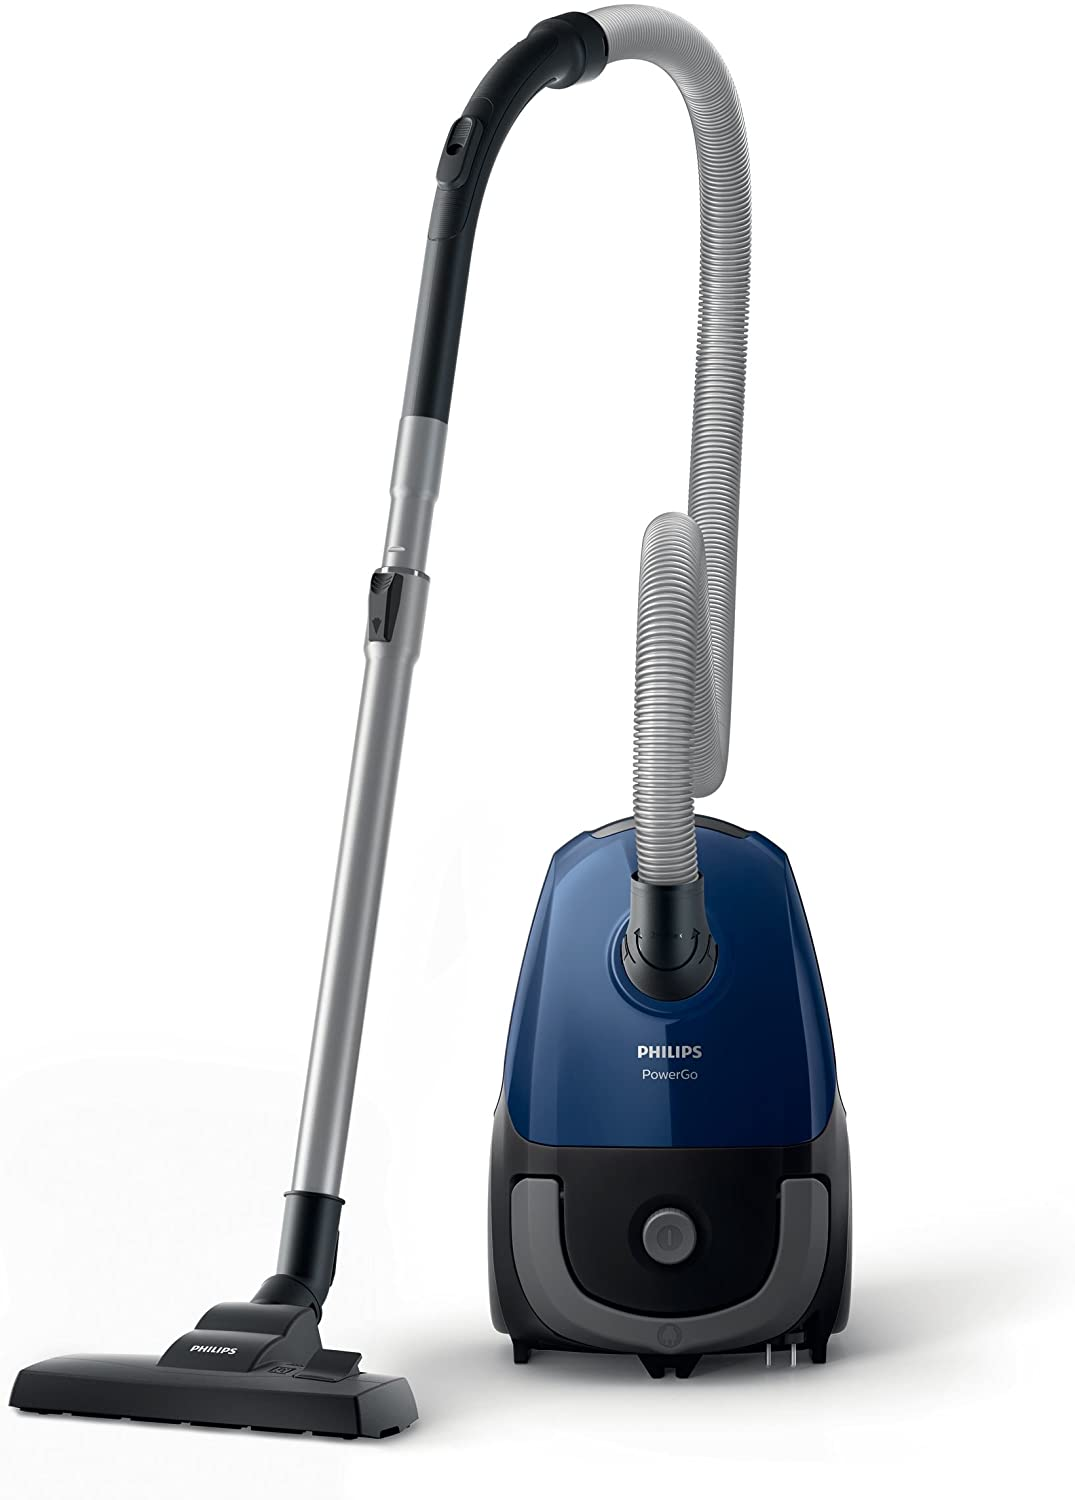 PowerGoVacuum cleaner with Bag | Philips